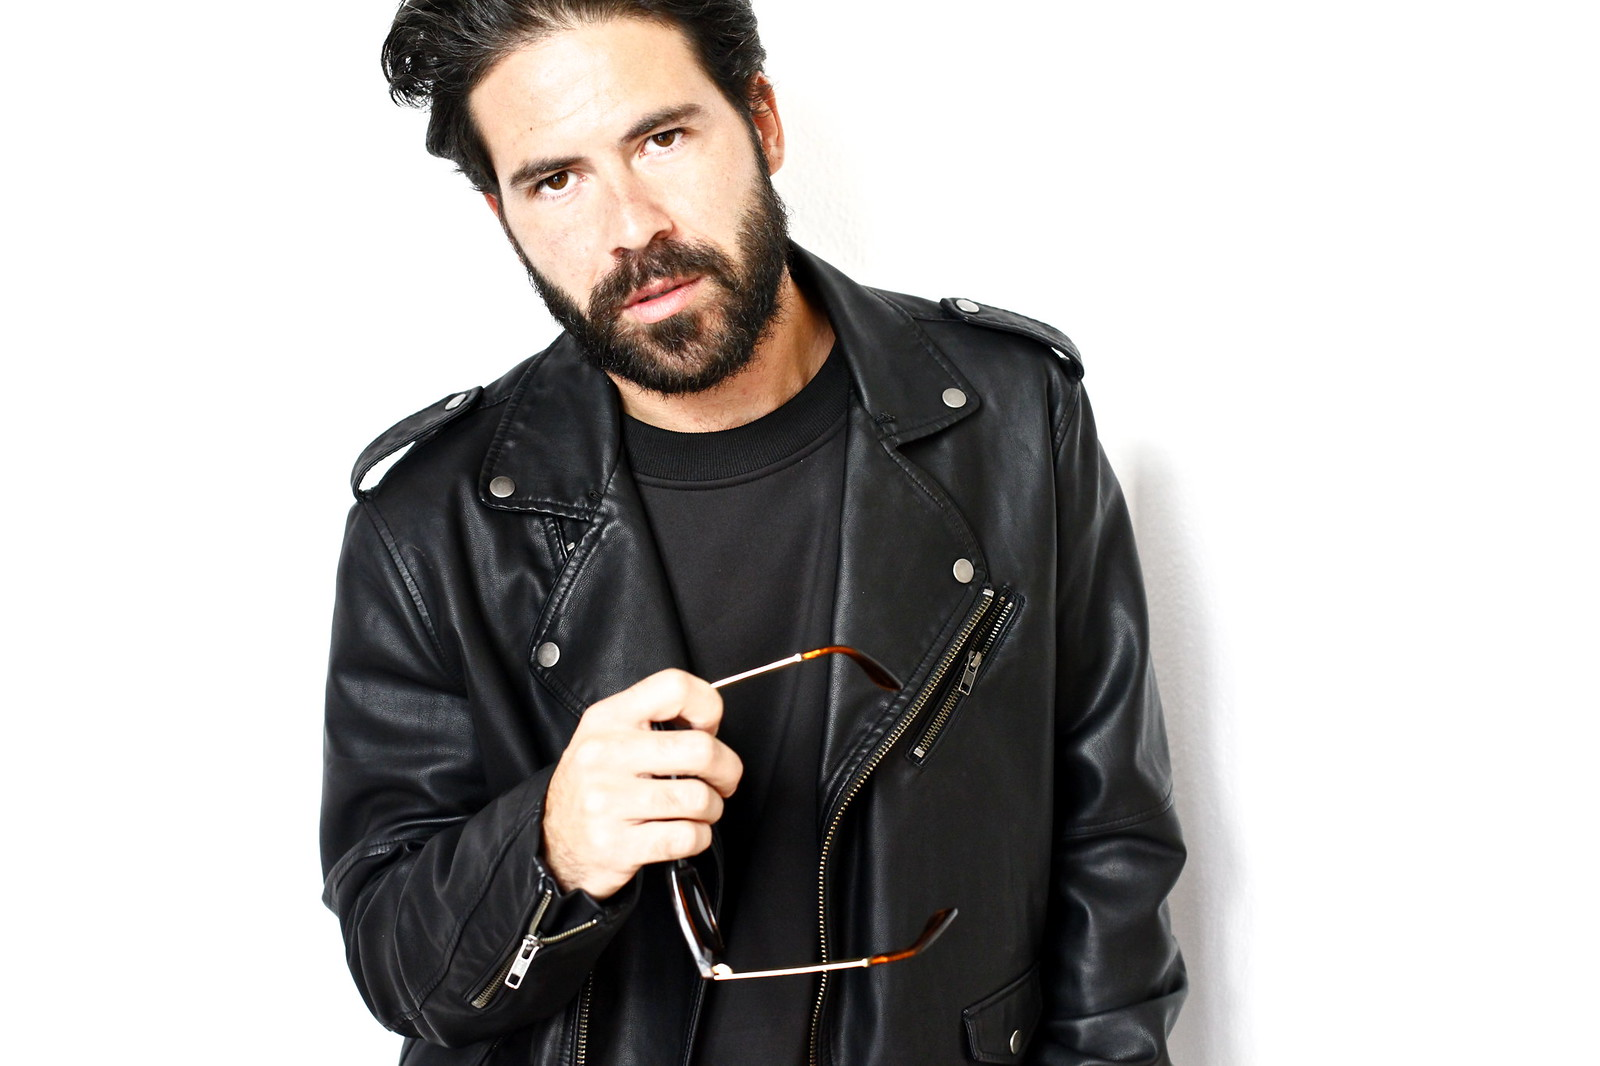 miguel_carrizo_ilcarritzi_asos_h&m_leather_jacket_